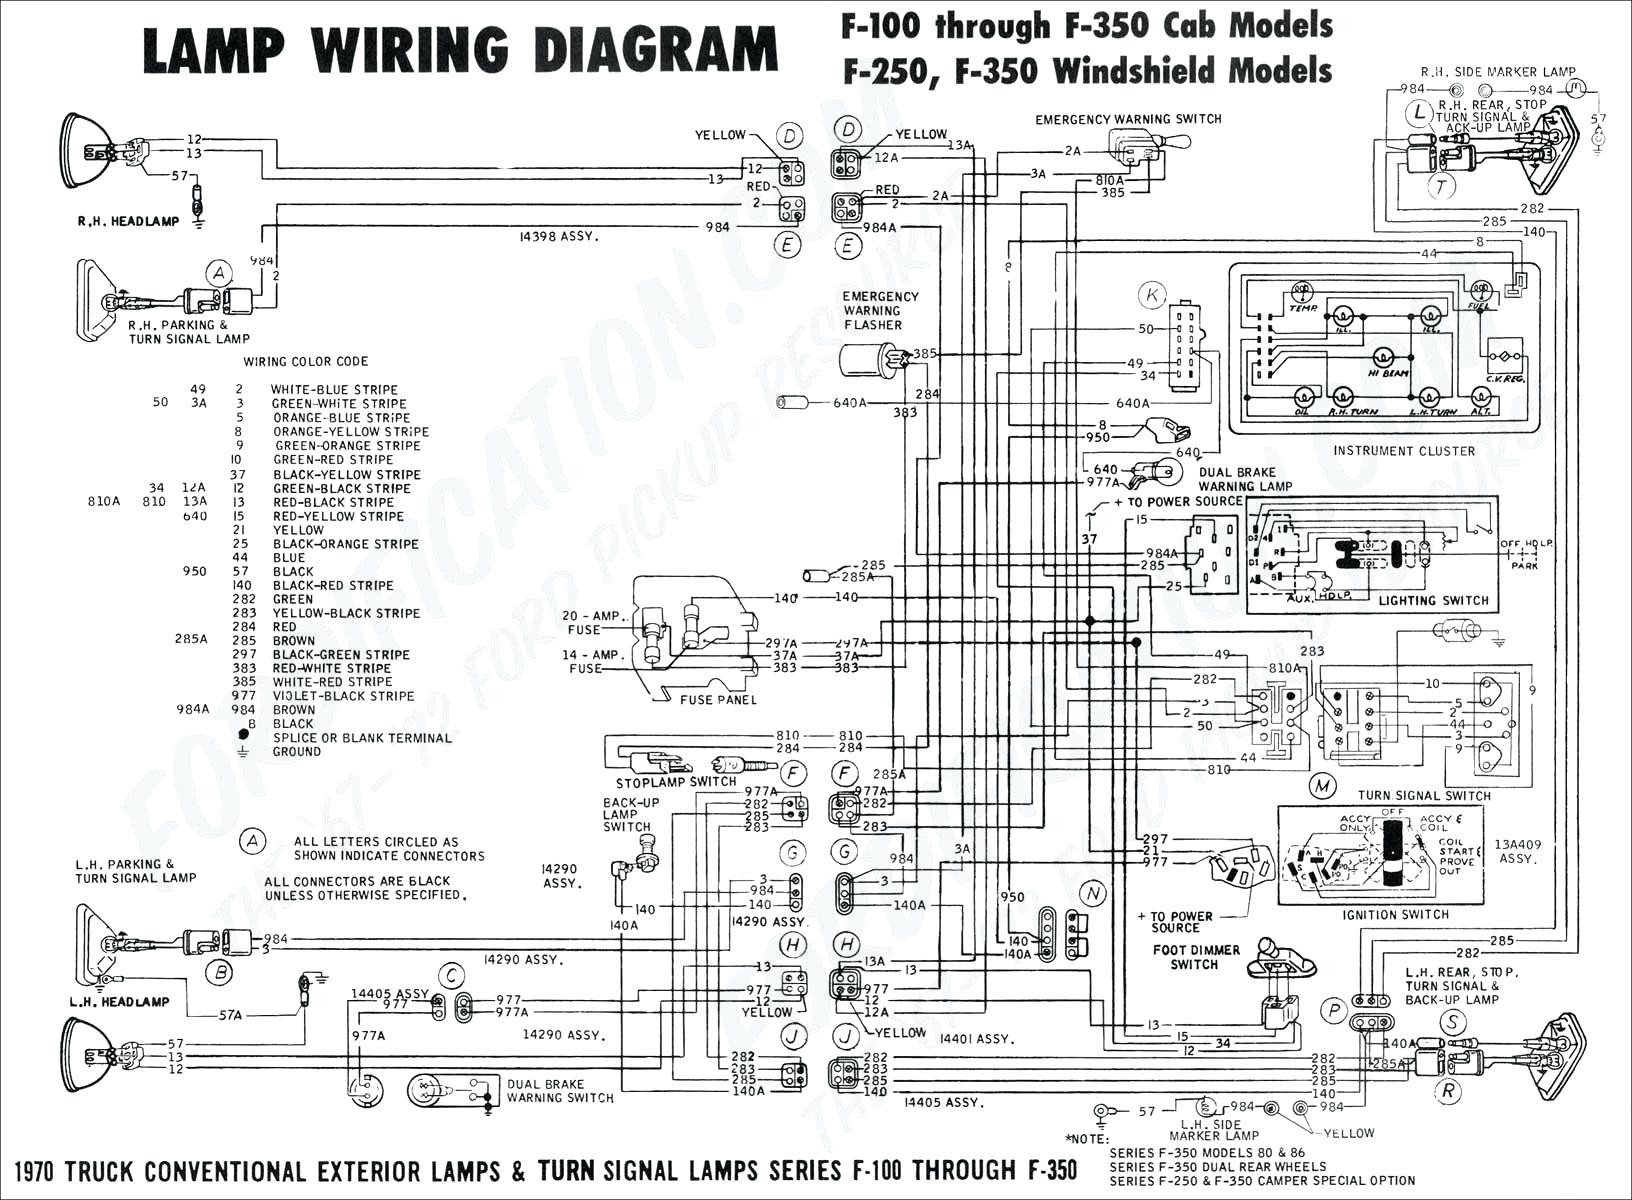 Wiring Diagram PDF: 2003 Ford Escape Fuse Diagram